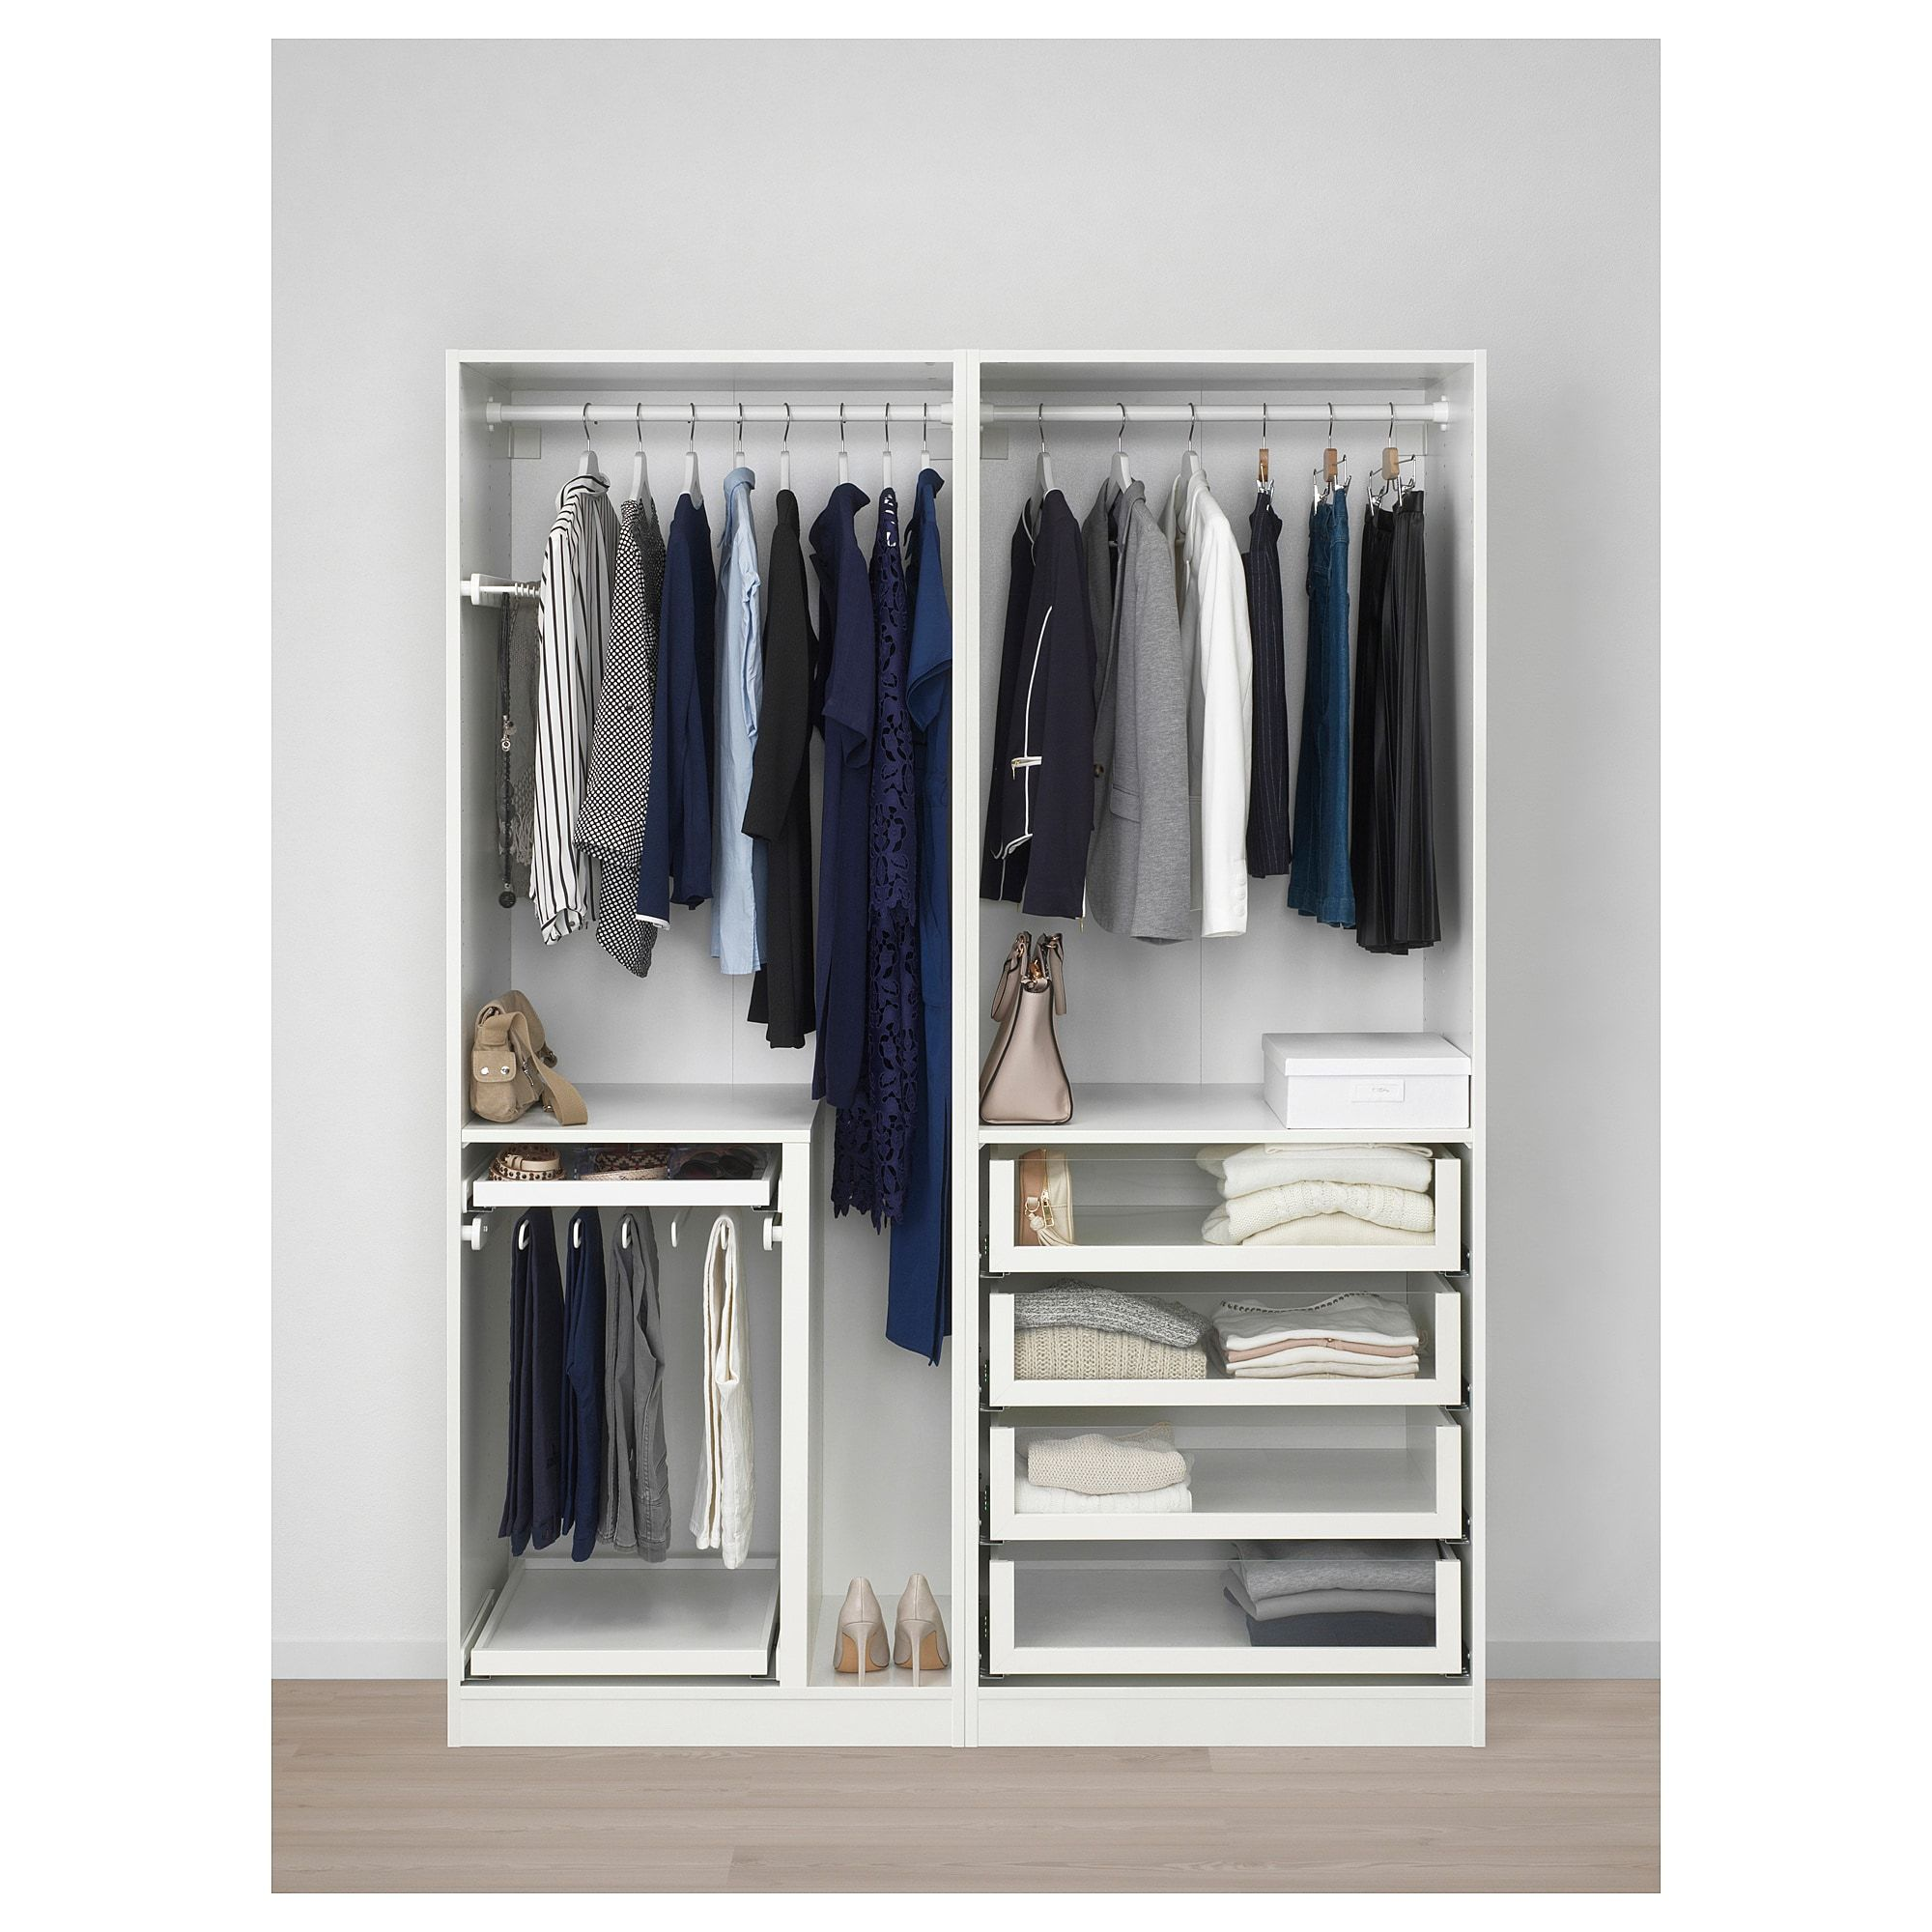 Pax Uggdal Ikea Pax Wardrobe White Uggdal Gray Glass In 2019 Products